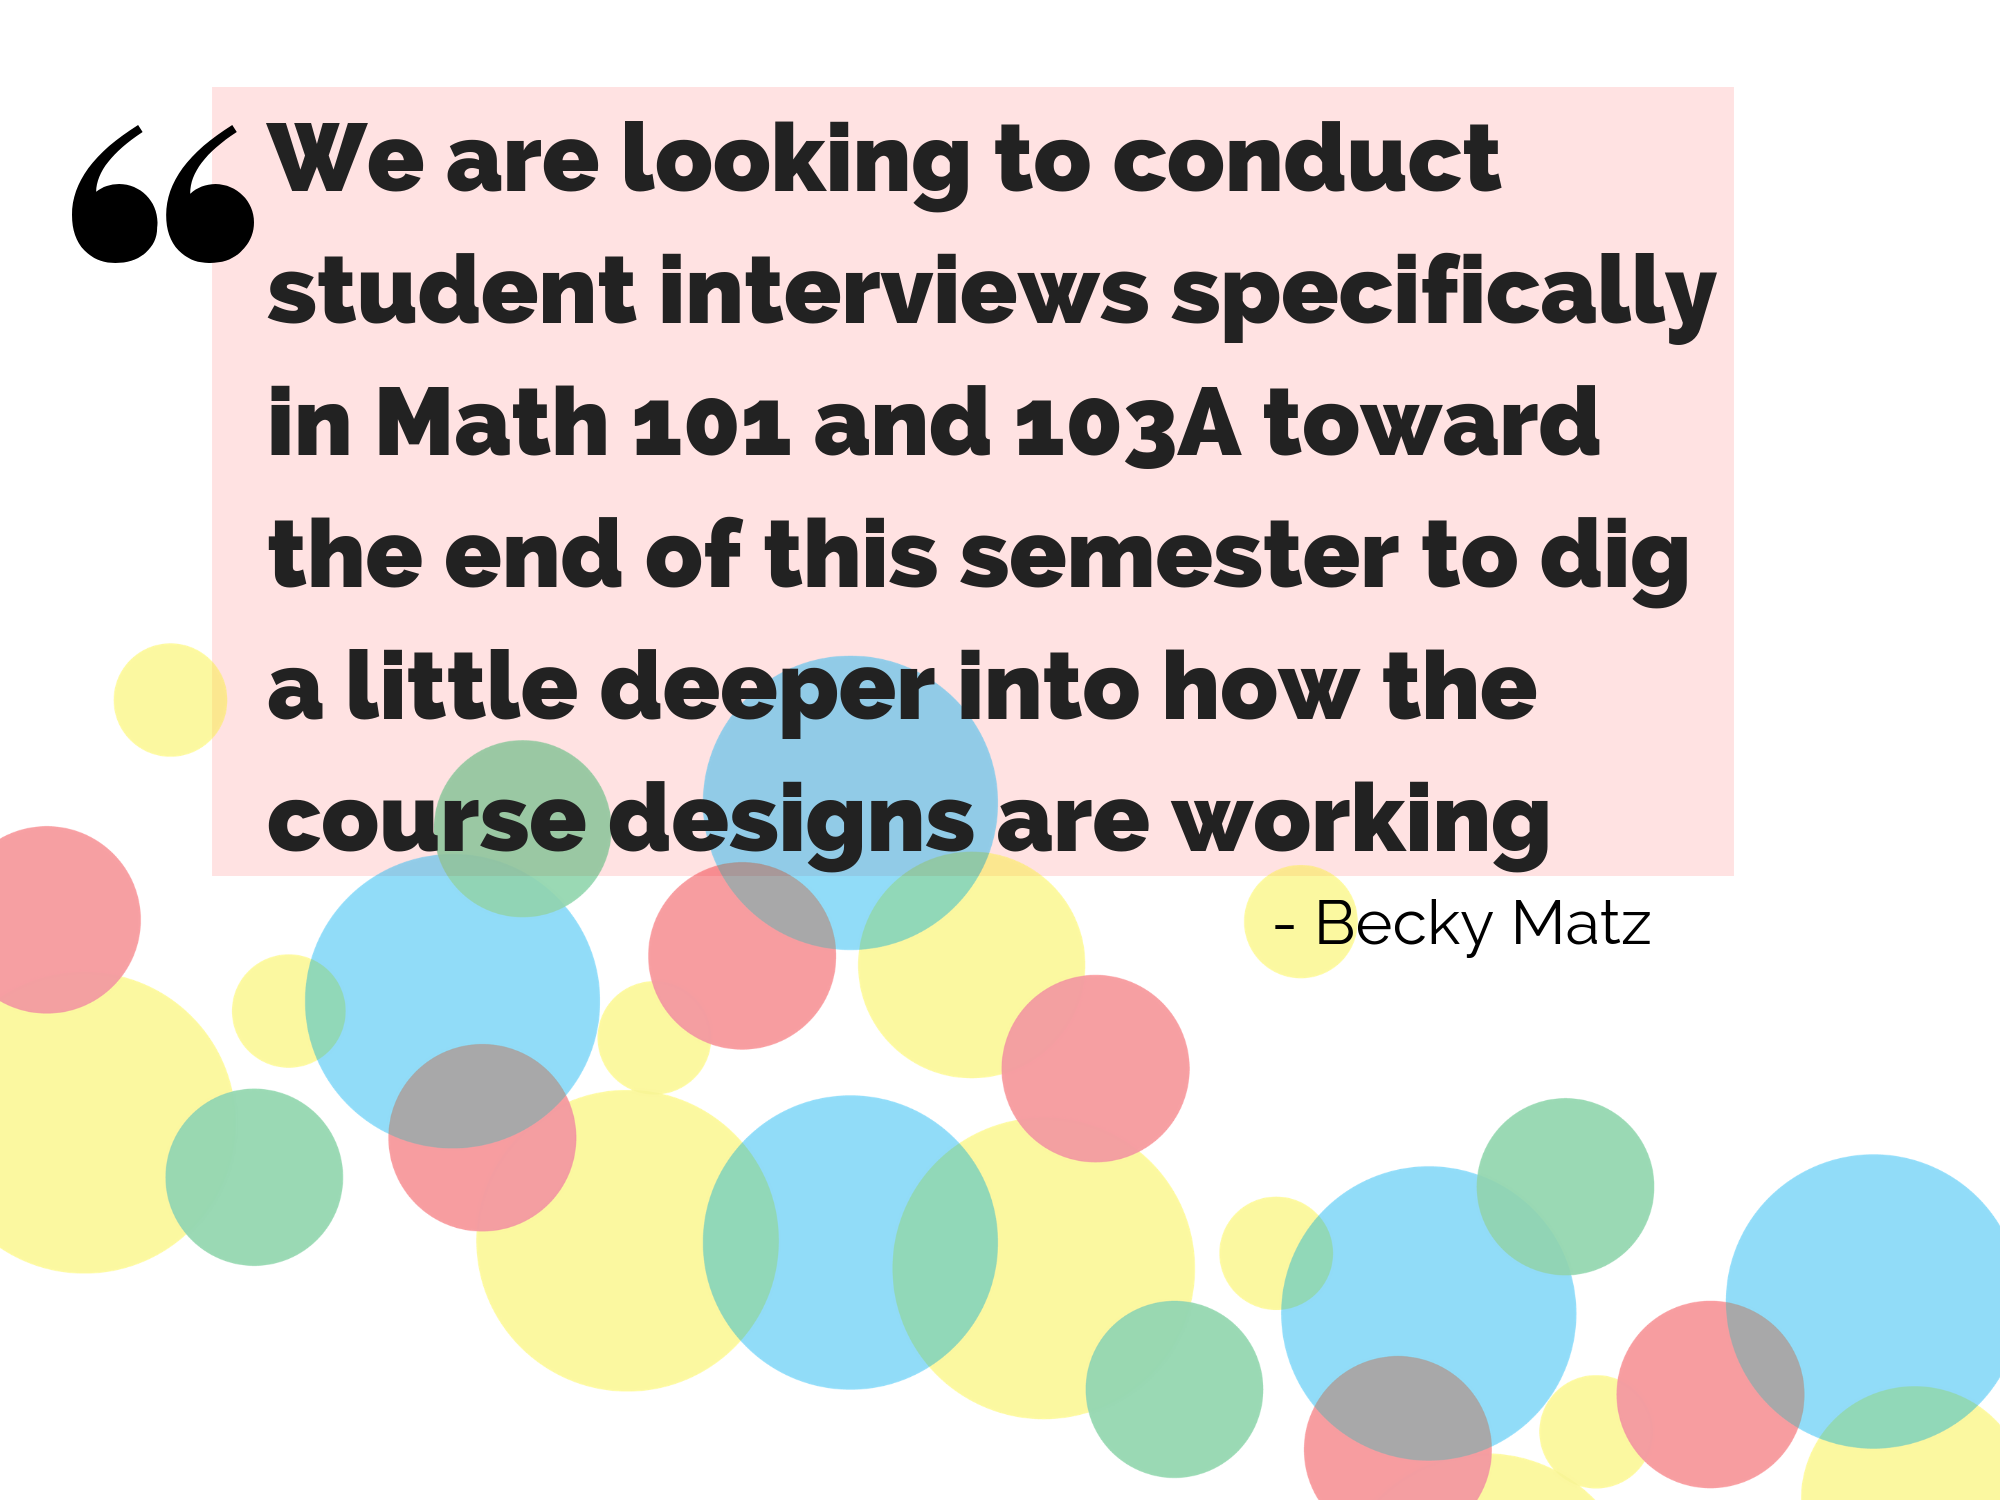 Quote from Becky Matz